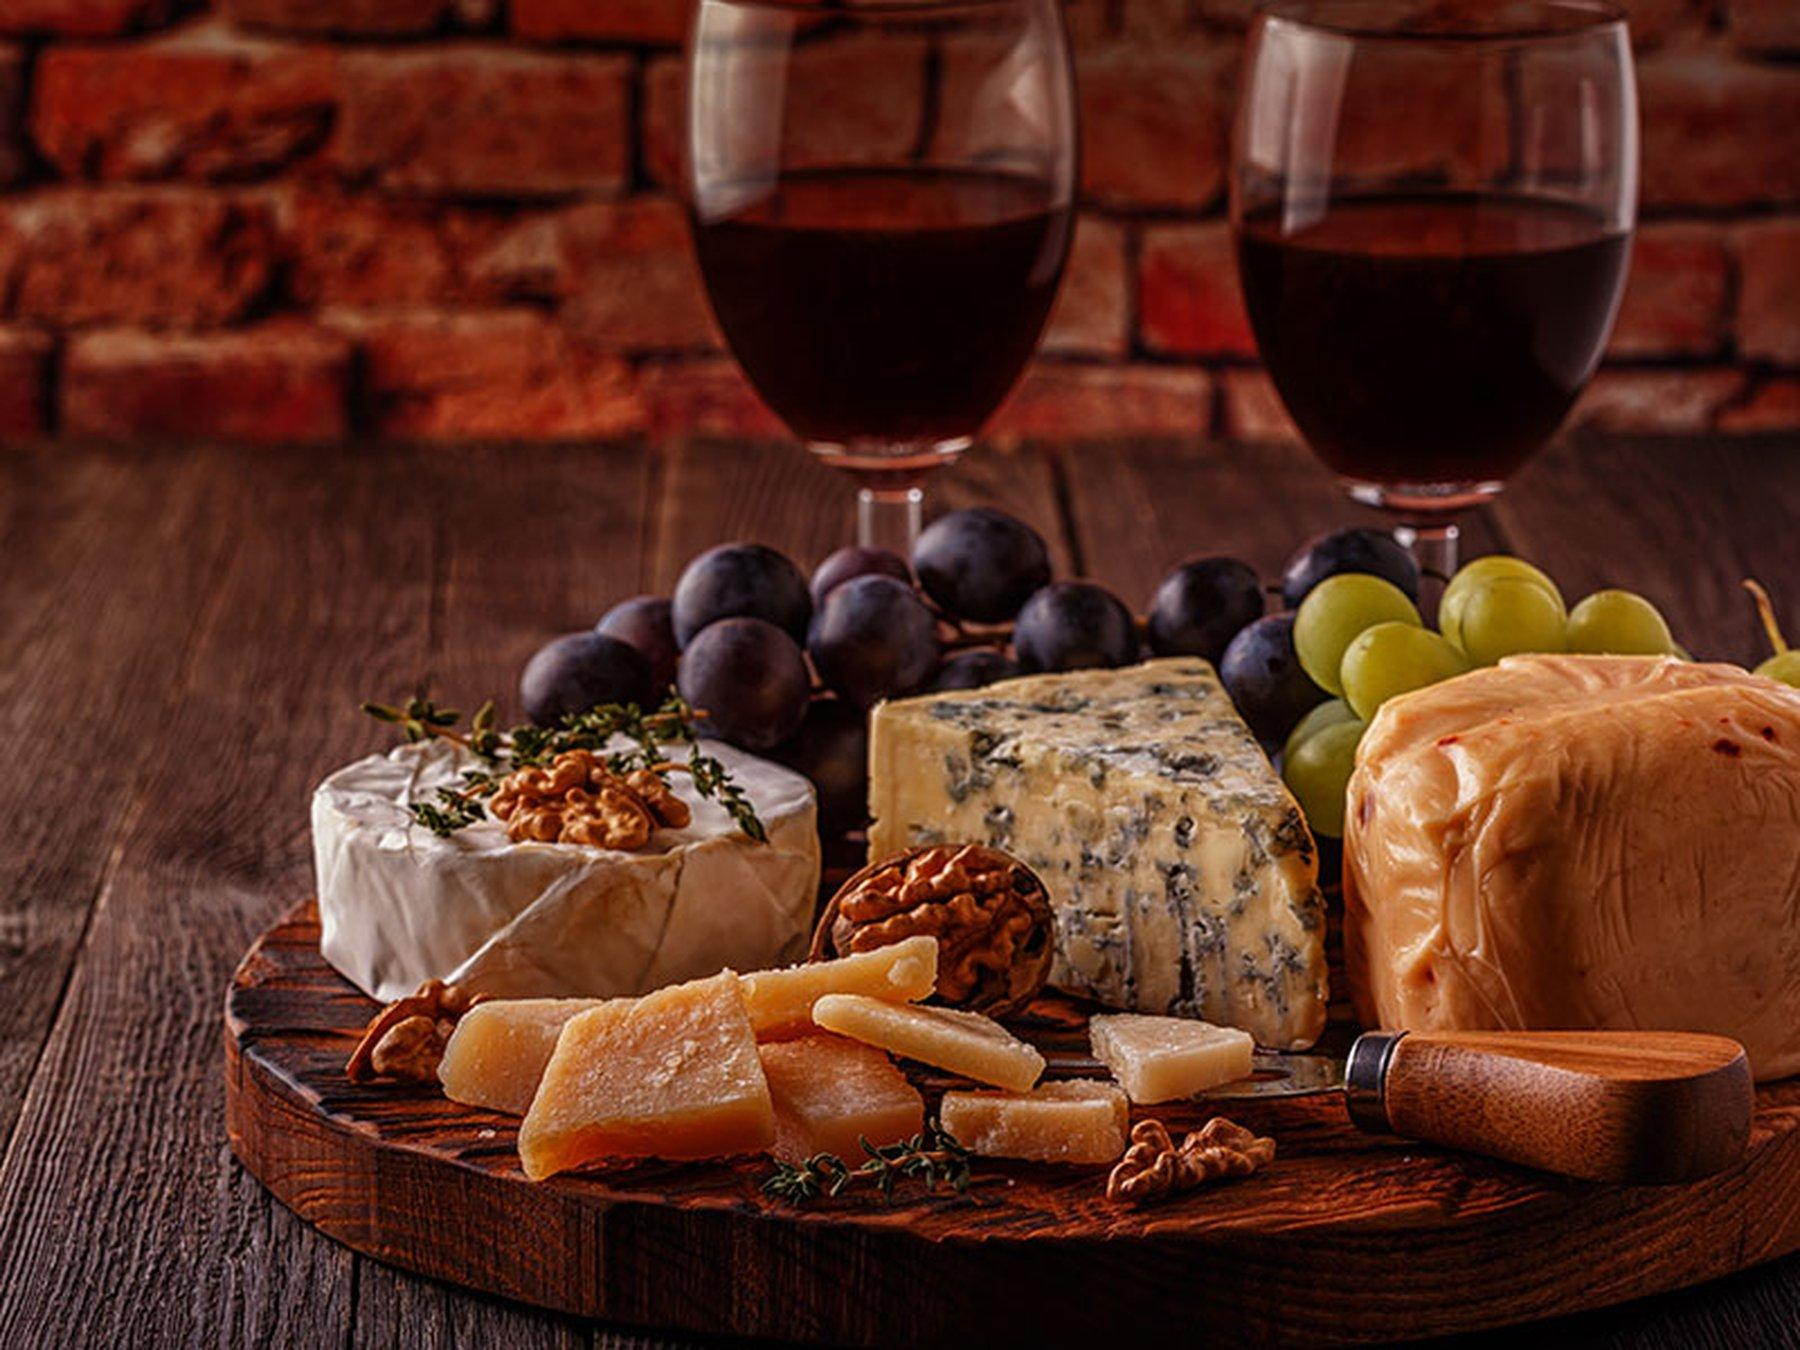 Two glasses of red wine and platter of cheeses and grapes